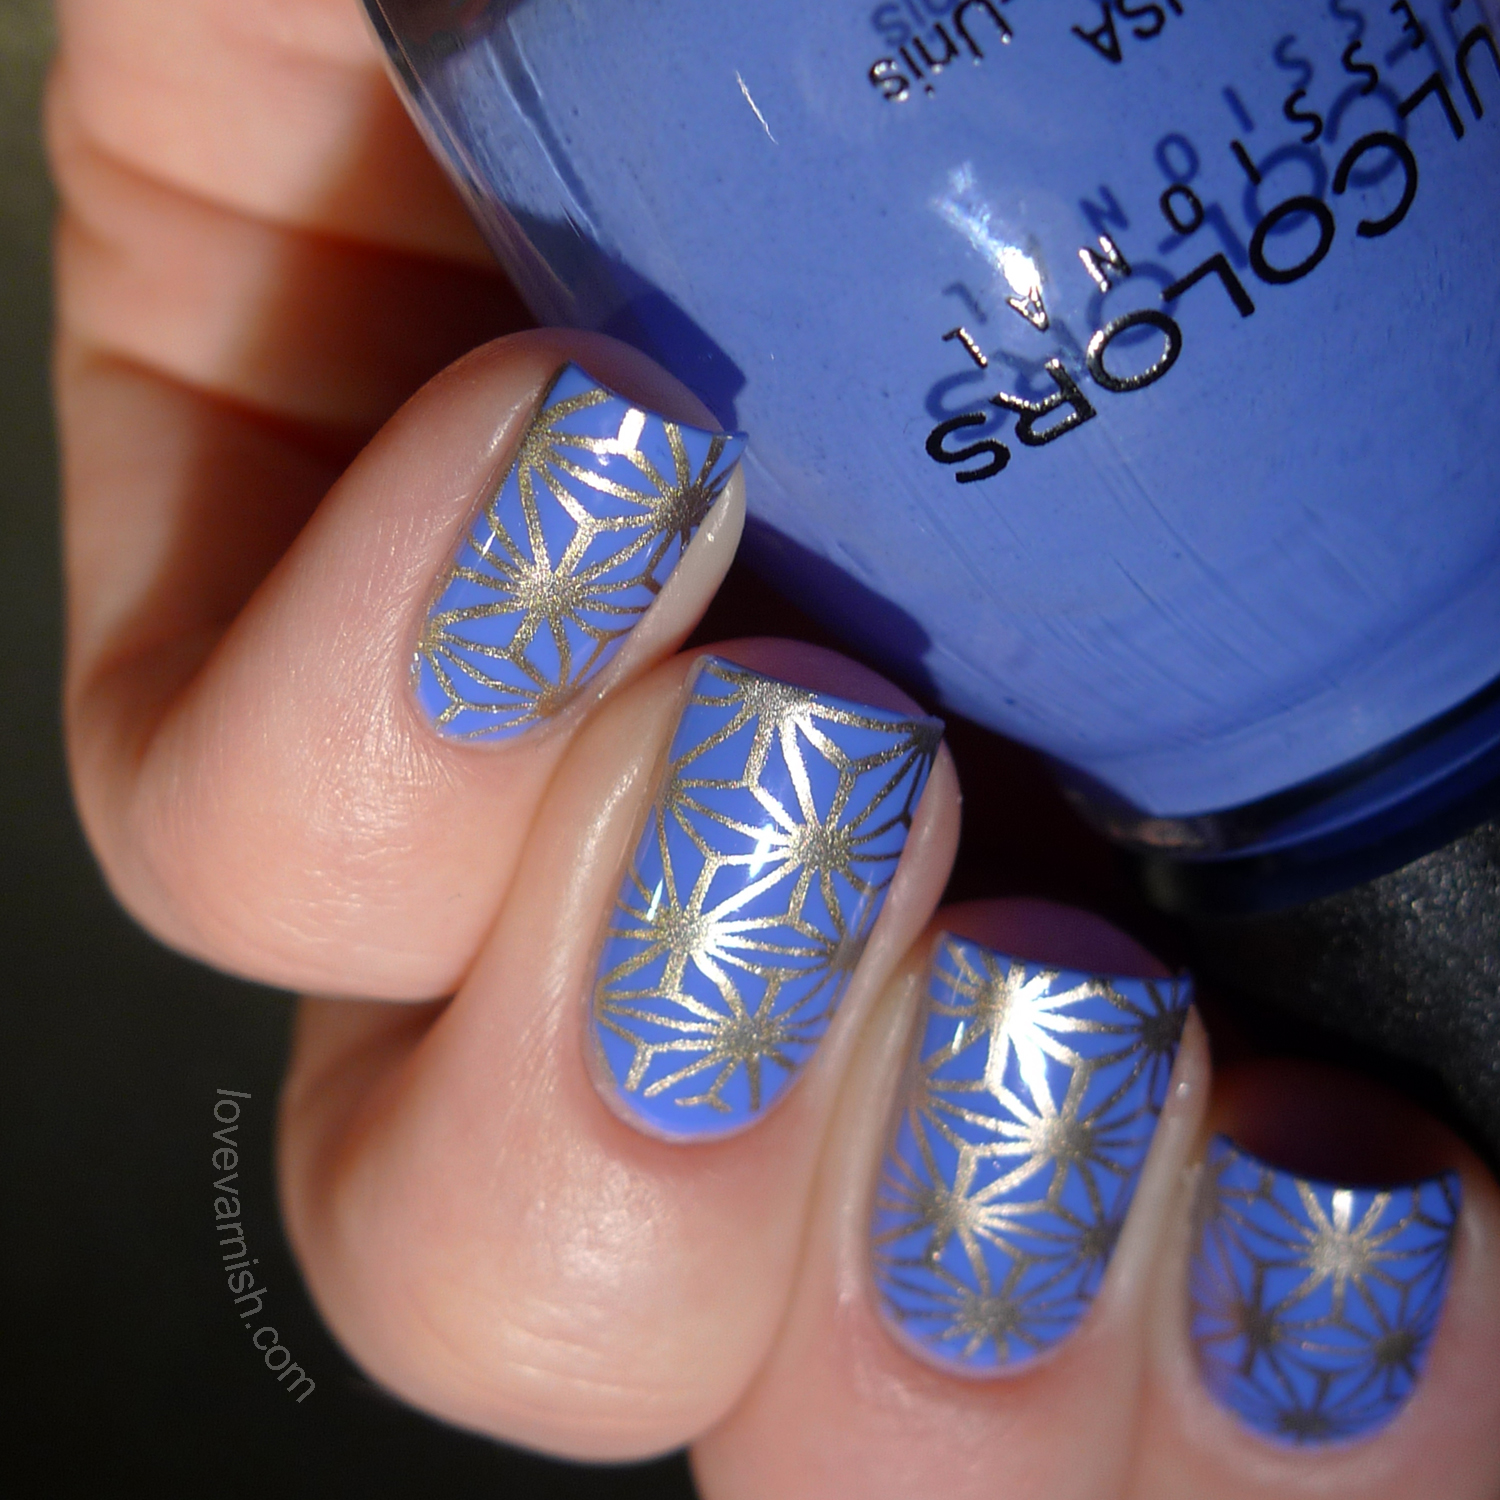 Sinful Colors Blue La La MoYou London stamping nailart